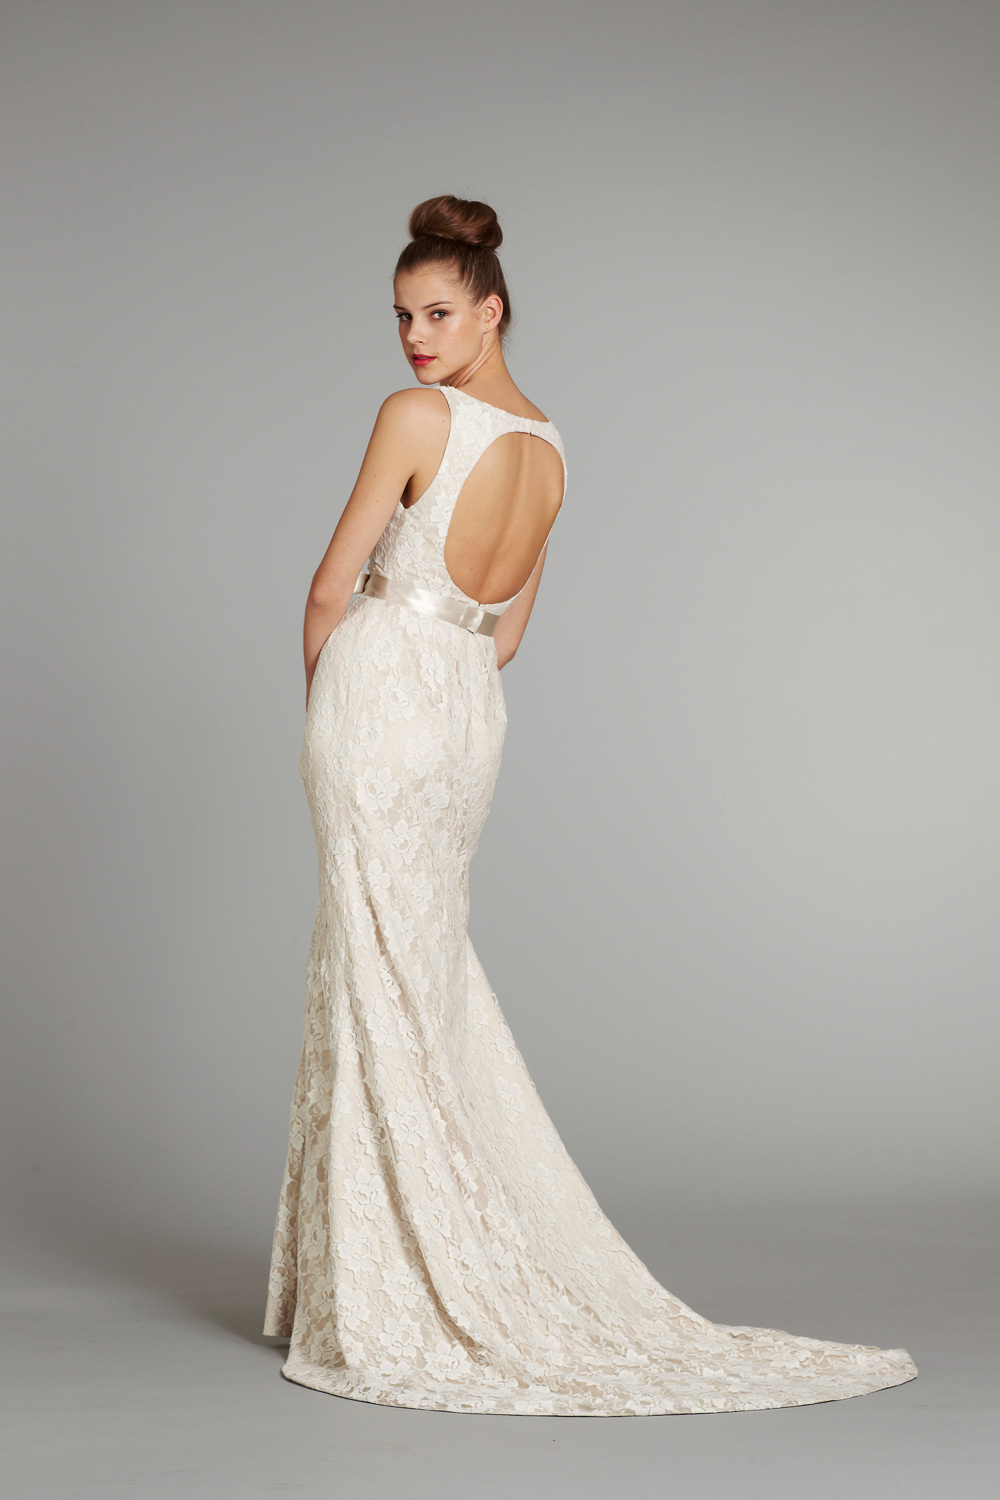 Bridal-gown-wedding-dress-jlm-hayley-paige-blush-fall-2012-saffron-back.full